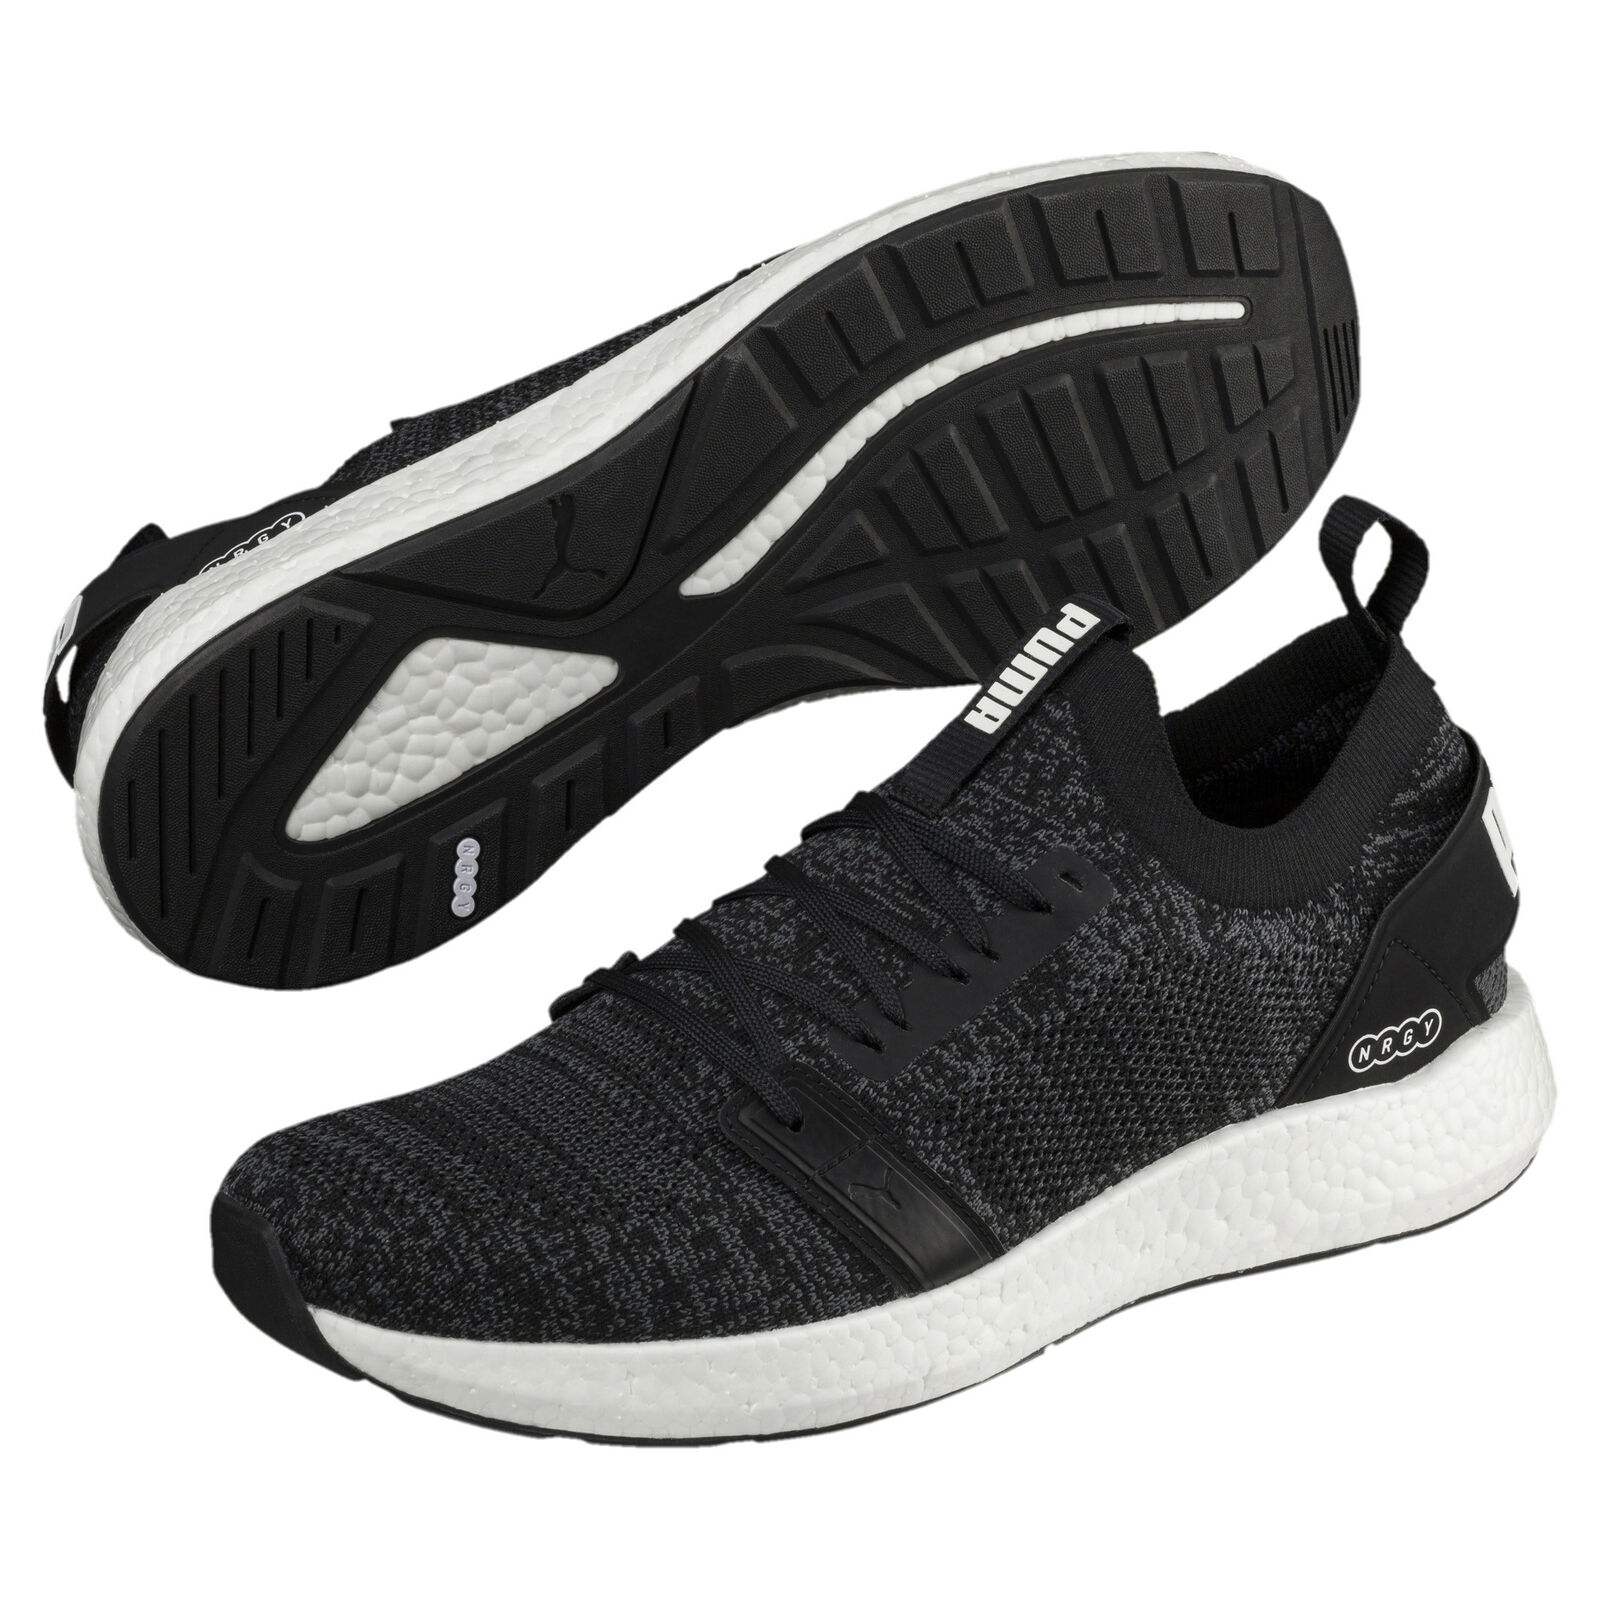 PUMA NRGY Neko Engineer Knit Men's Running Shoes Men Shoe Running